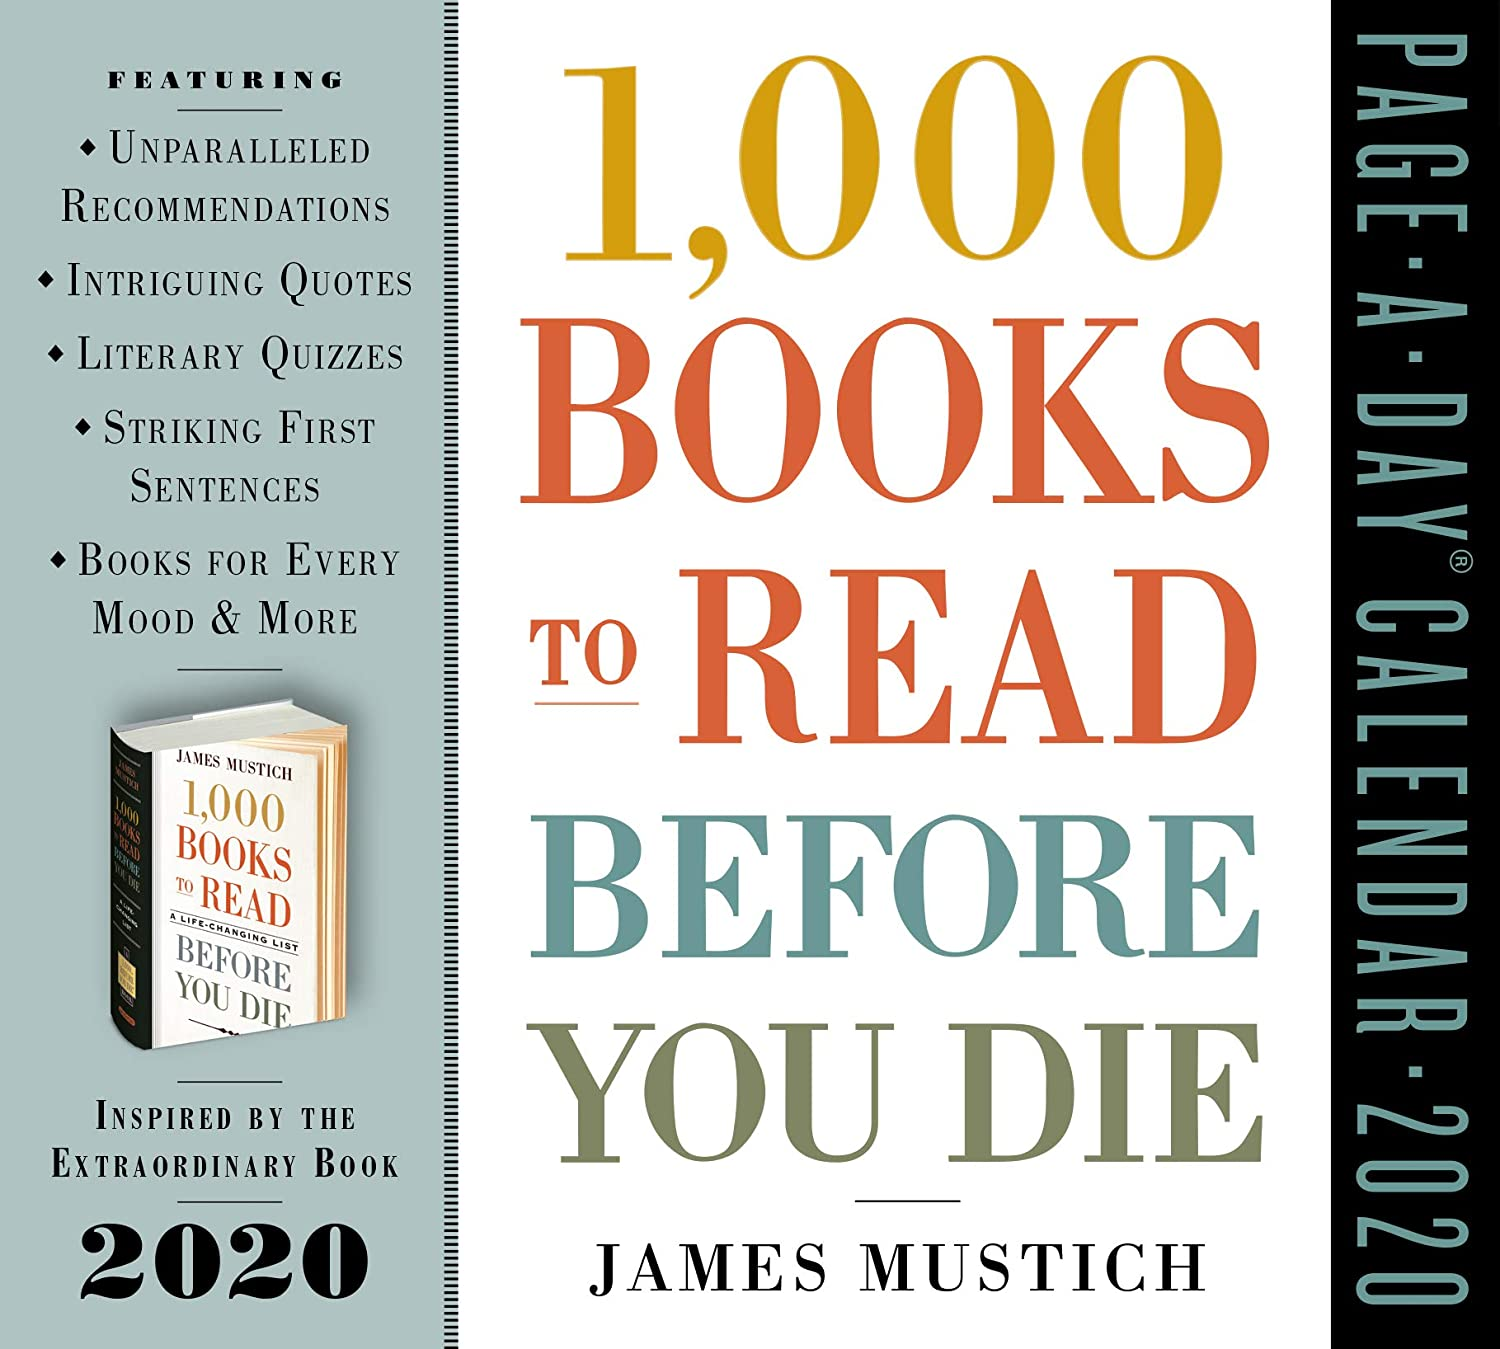 List Of 2020 Books.1000 Books To Read Before You Die Page A Day Calendar 2020 5 5 X 6 Inches